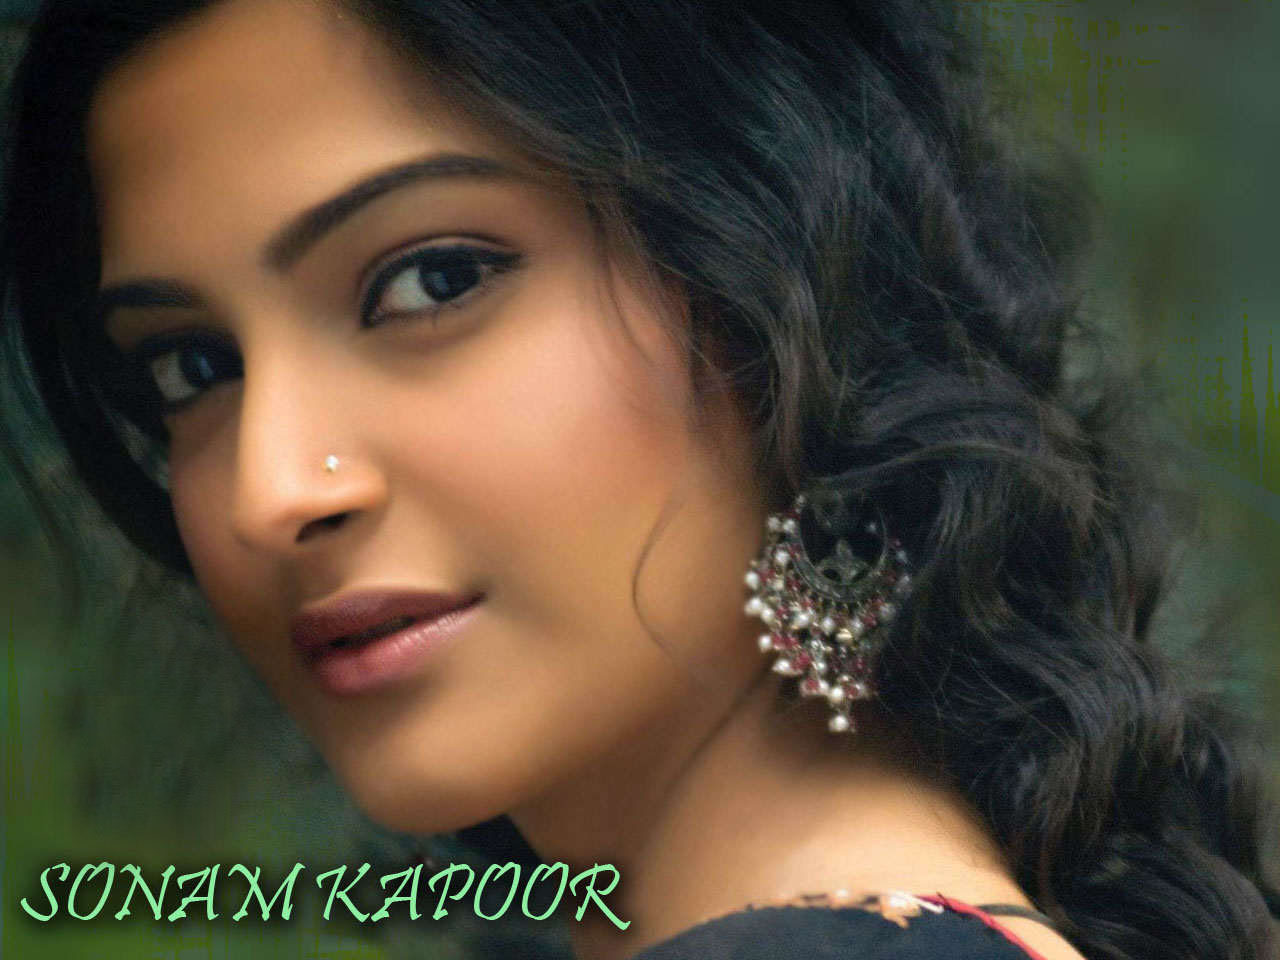 Hd Wallpapers For Desktop Sonam Kapoor Wallpapers